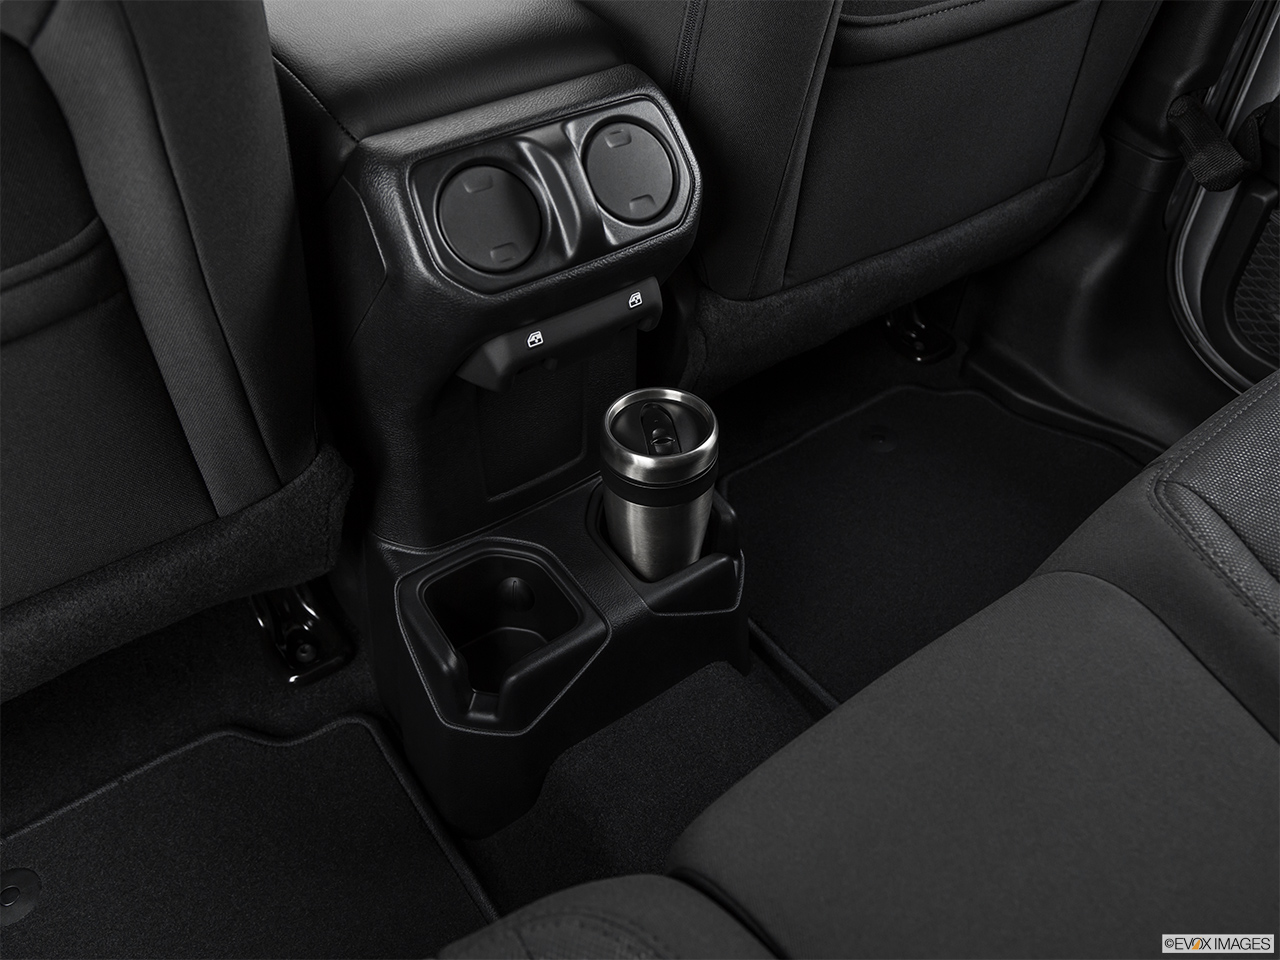 2020 Jeep Gladiator Sport S Cup holder prop (quaternary).